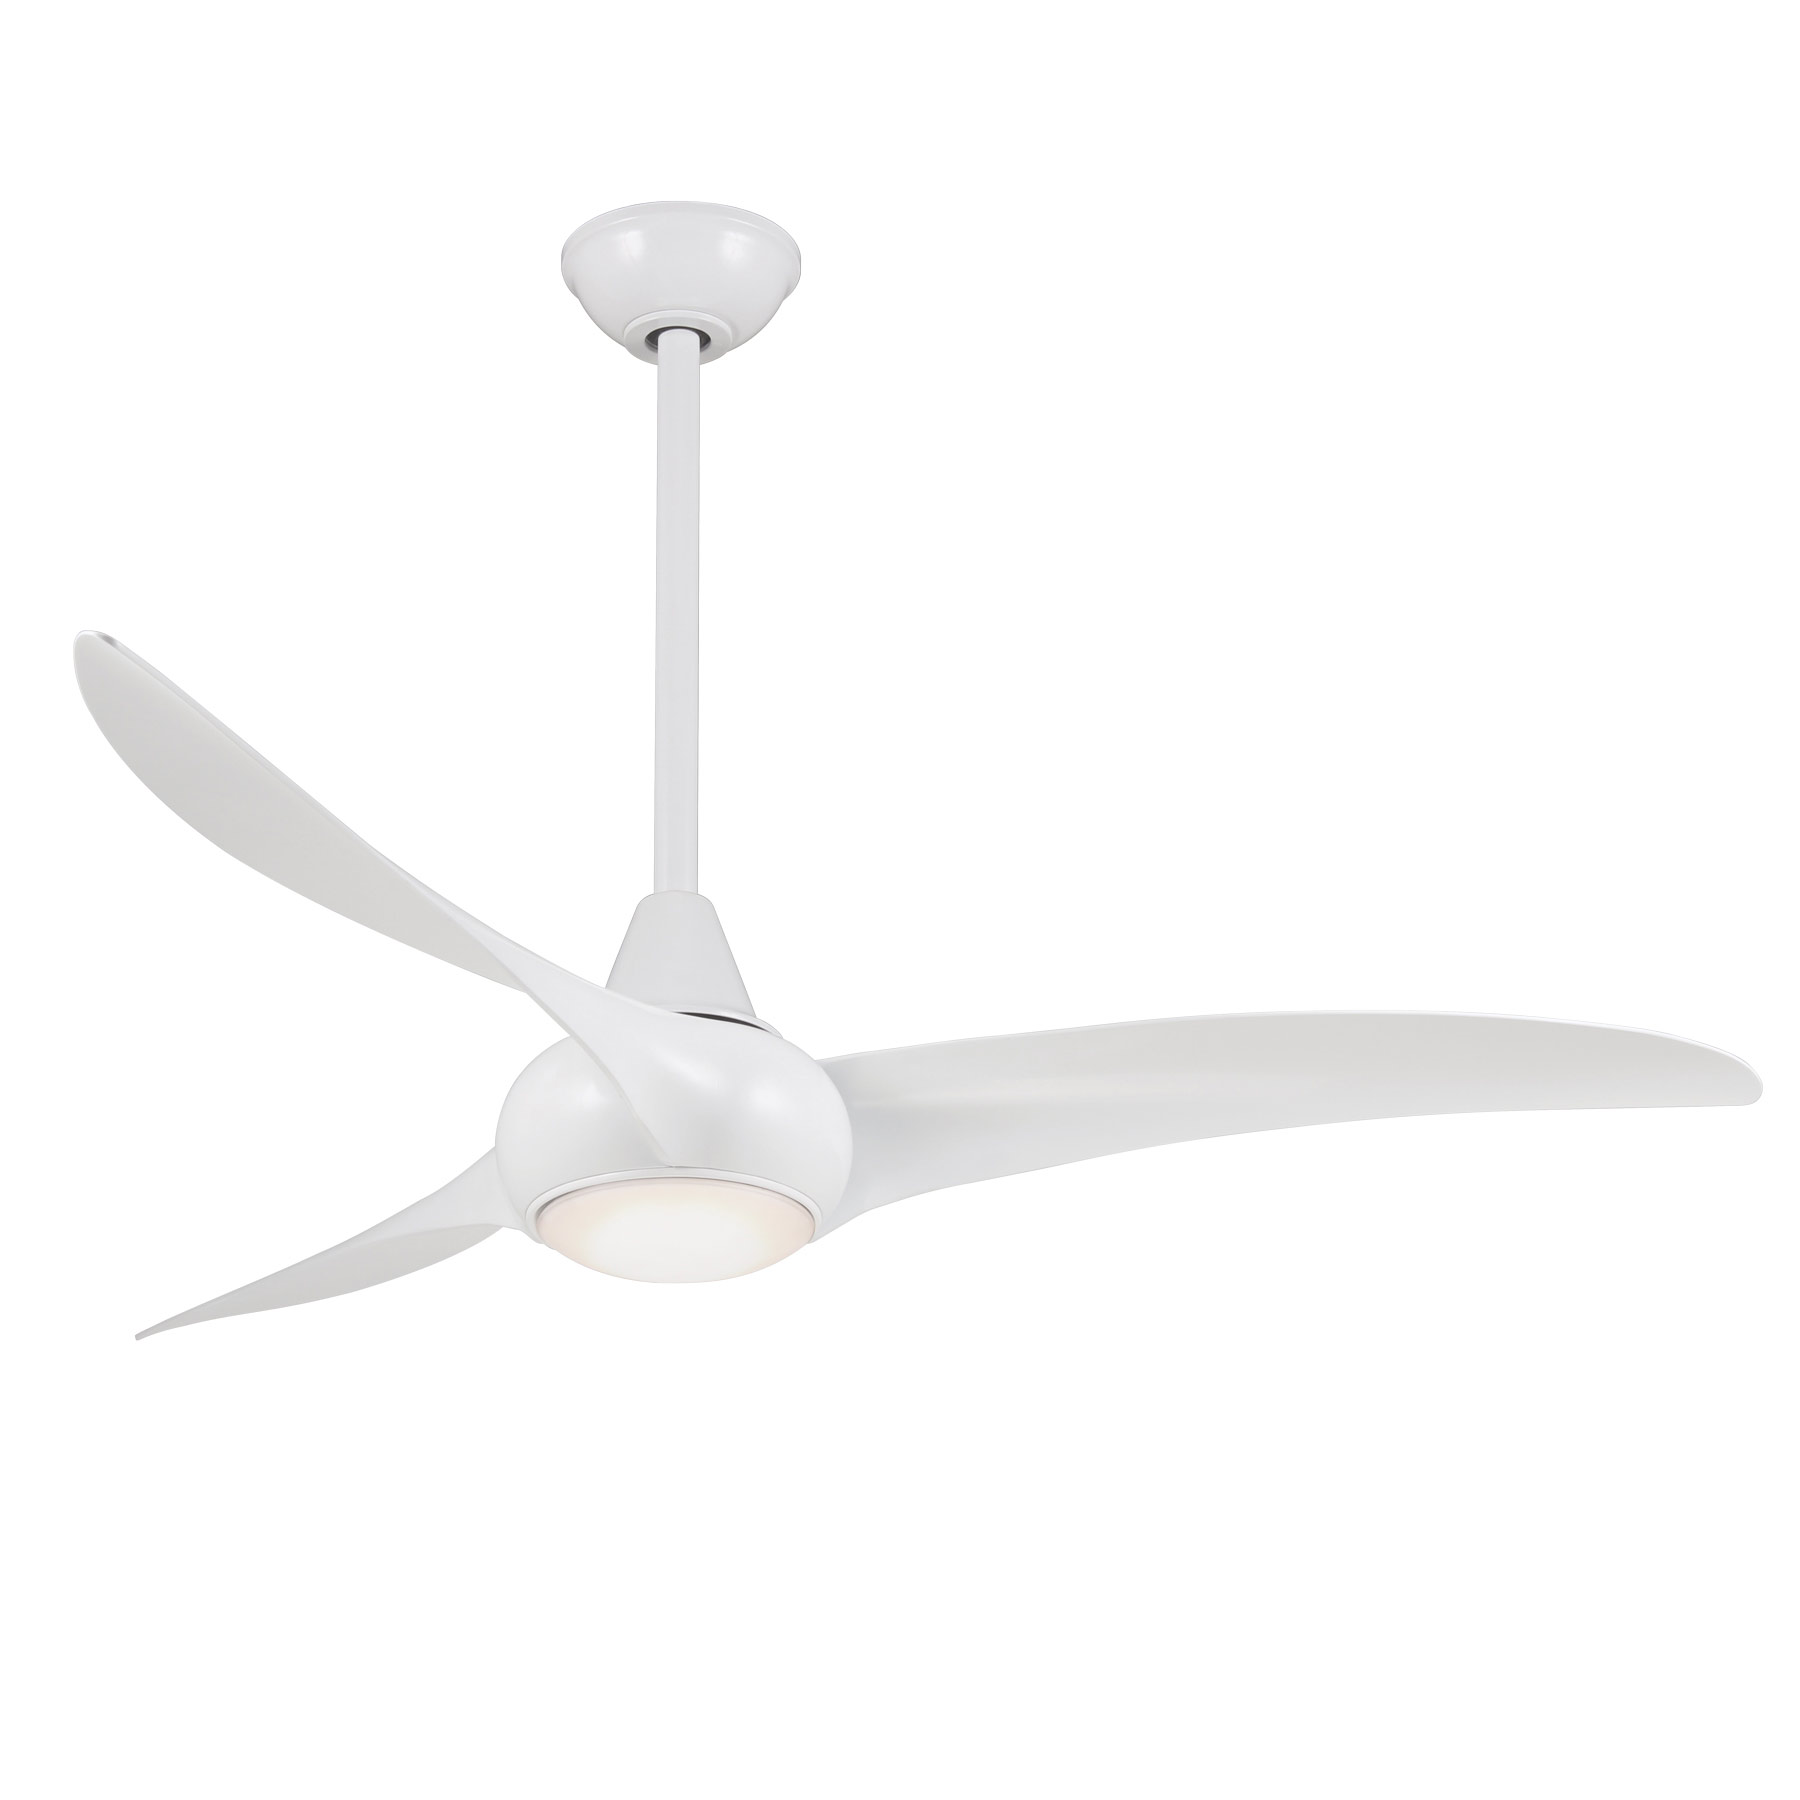 Image Light Wave Led Ceiling Fan By Minka Aire